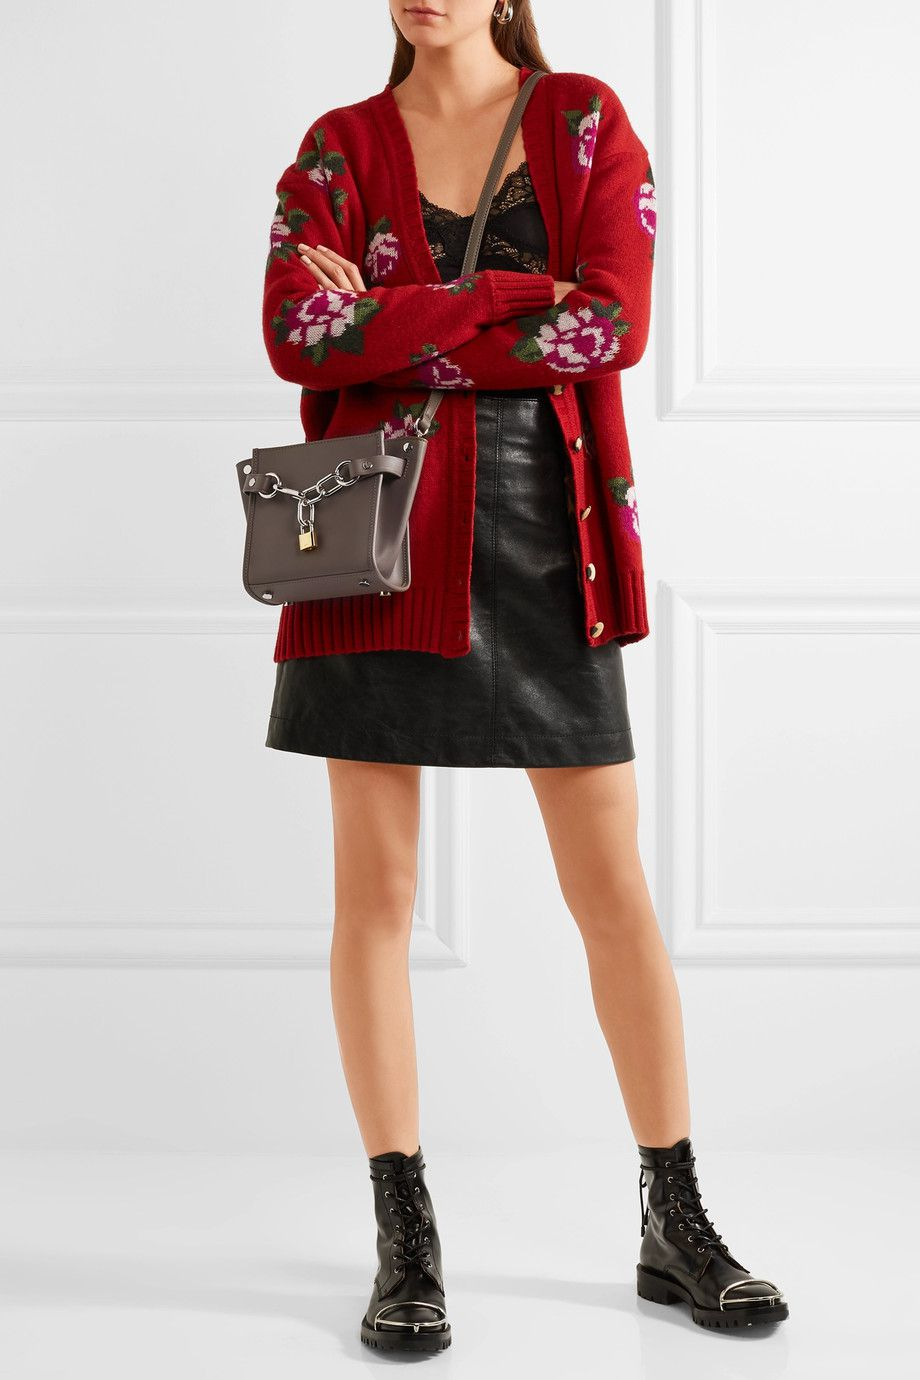 A model wearing a red jacket, black skirt, and holding a gray bag